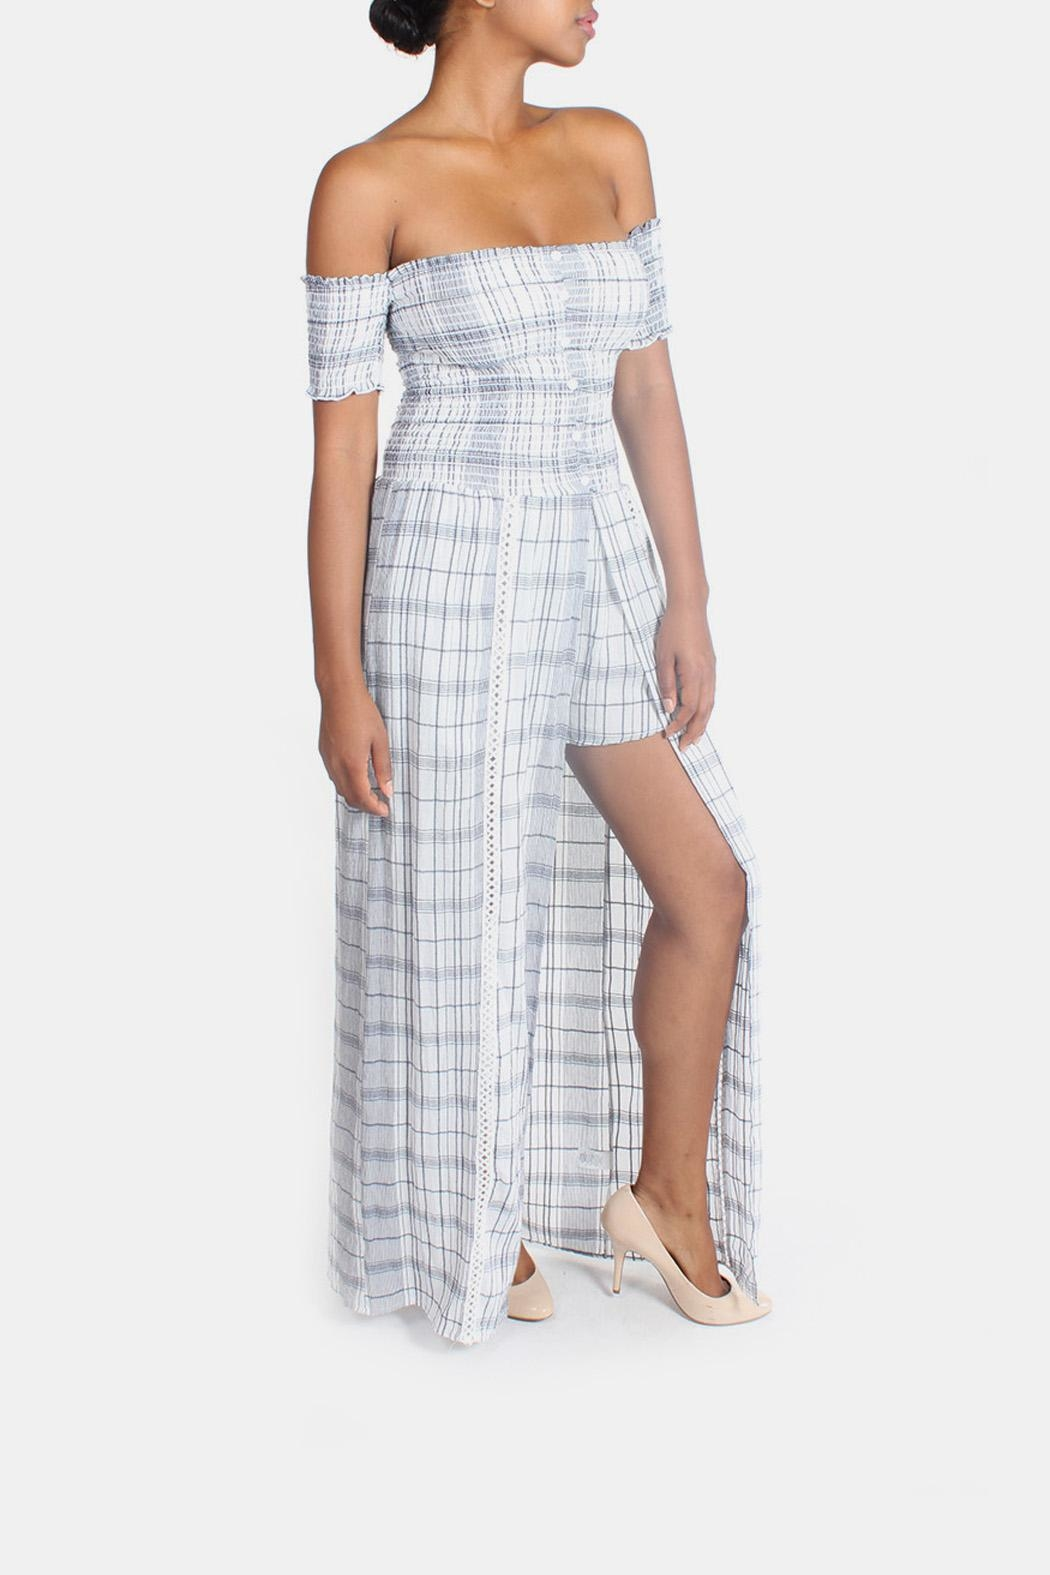 Sage Summer Plaid-Romper Maxi-Dress - Side Cropped Image